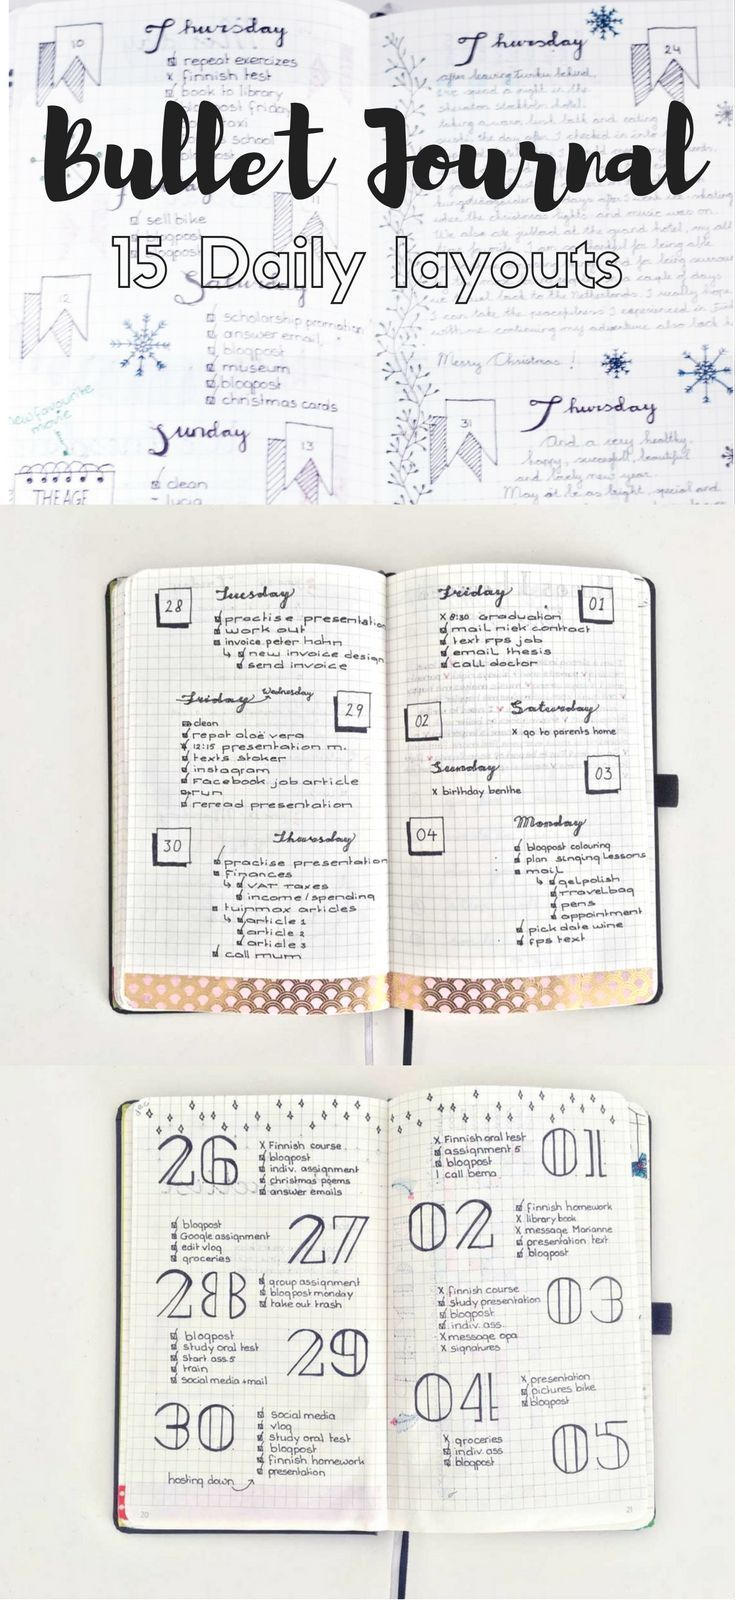 15 Diffferent Daily layouts for the Bullet Journal.